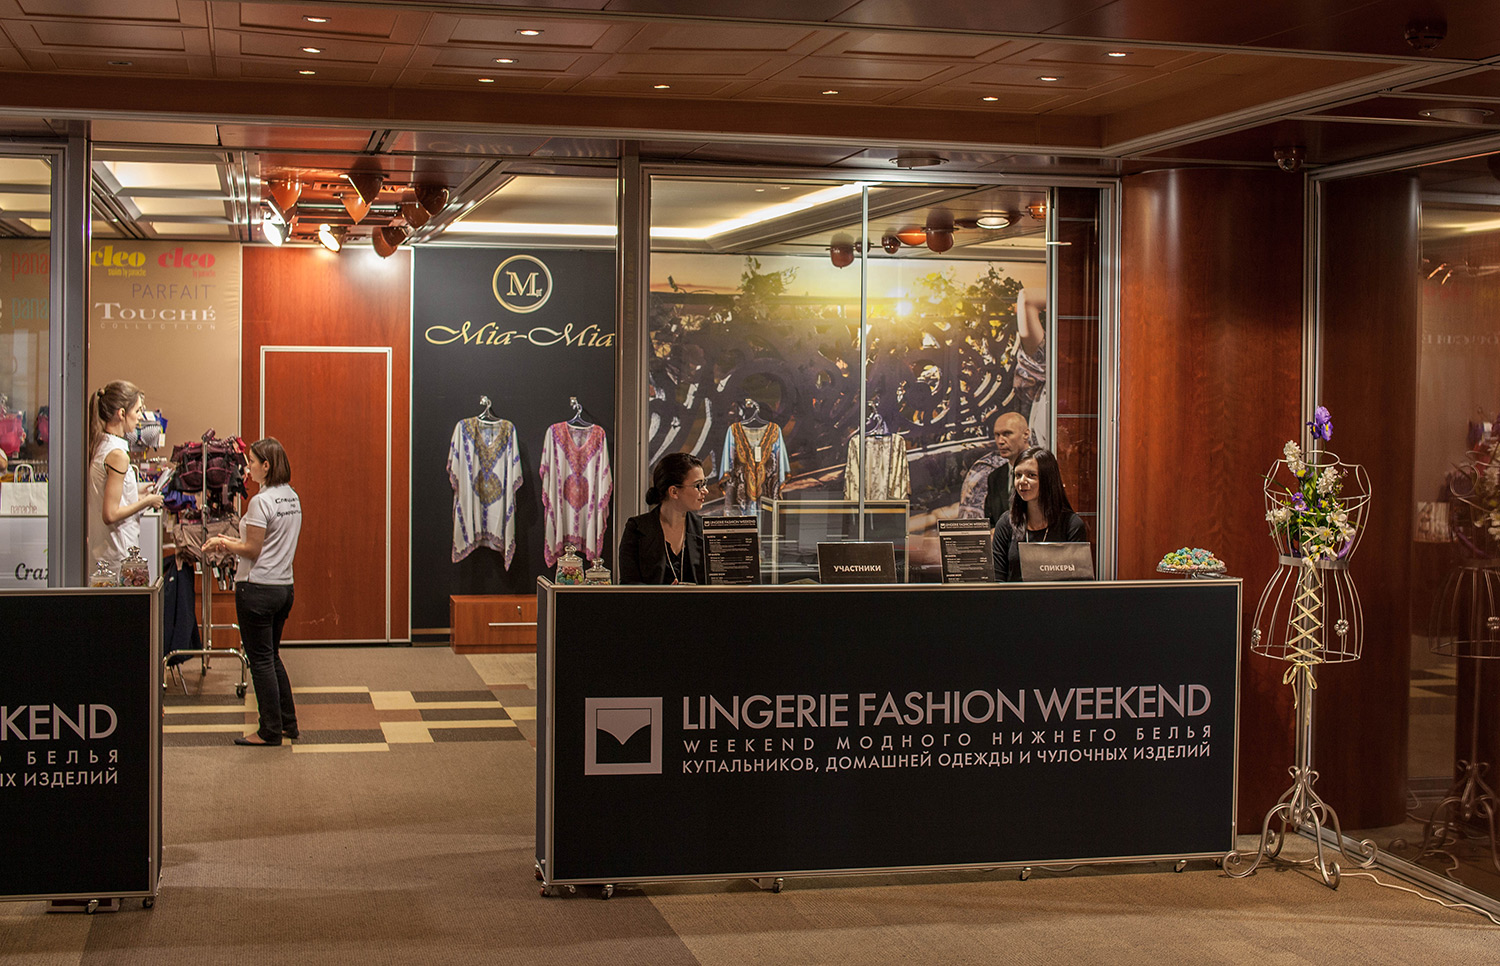 Lingerie Fashion Weekend, Москва, 2016, журнал GB {Garterblog.ru}